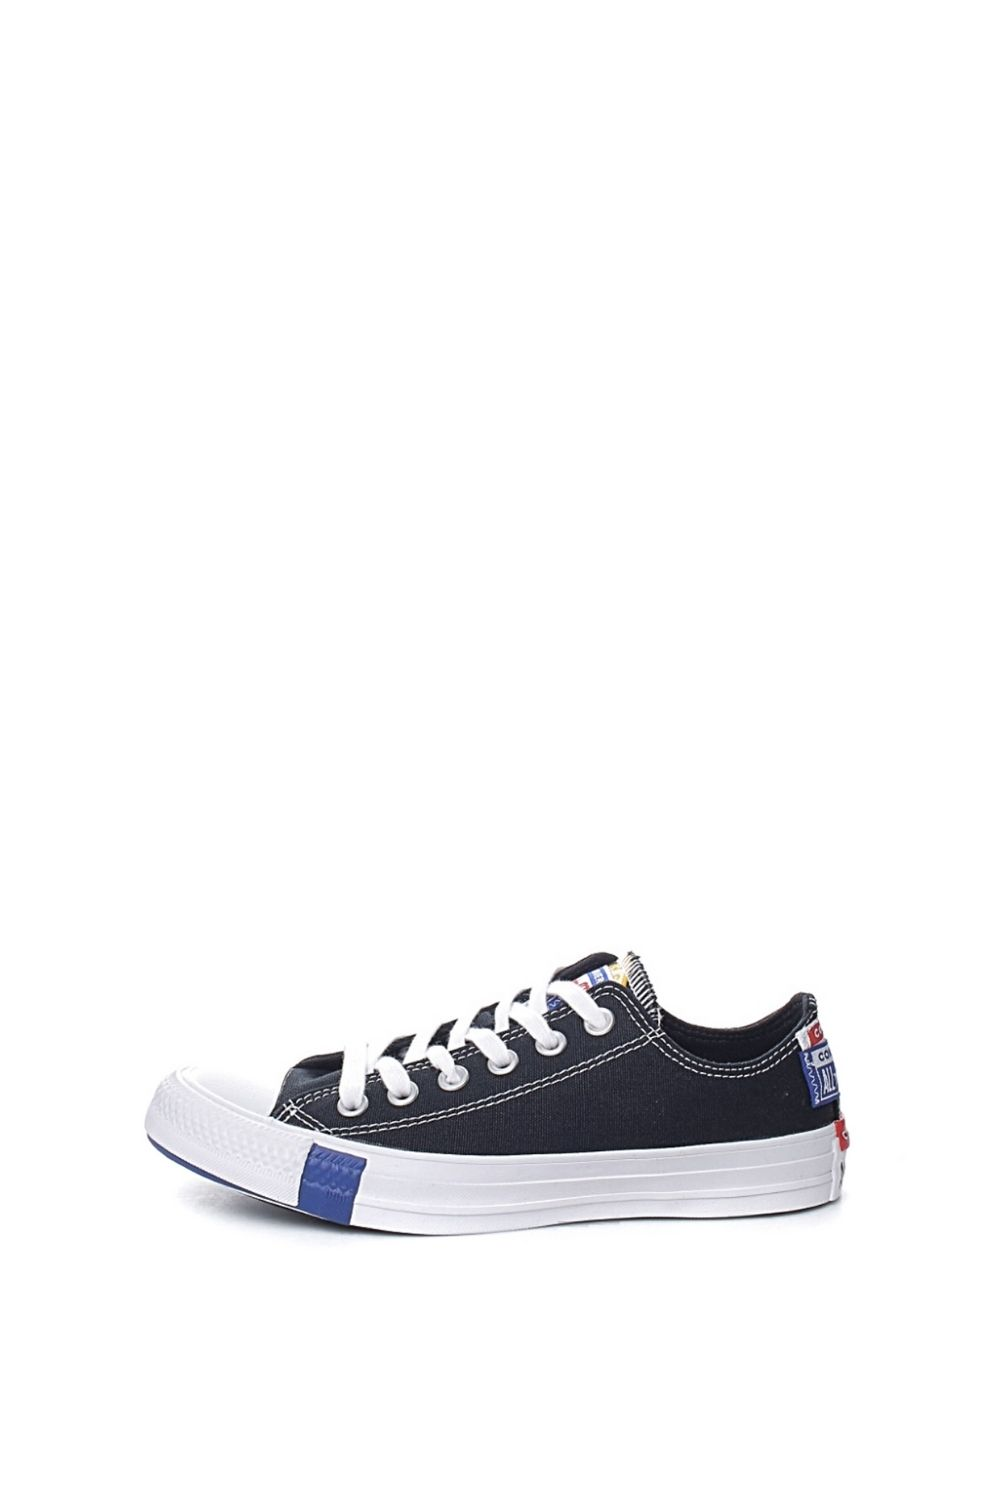 CONVERSE – Unisex sneakers CONVERSE CHUCK TAYLOR ALL STAR LOGO μαύρα